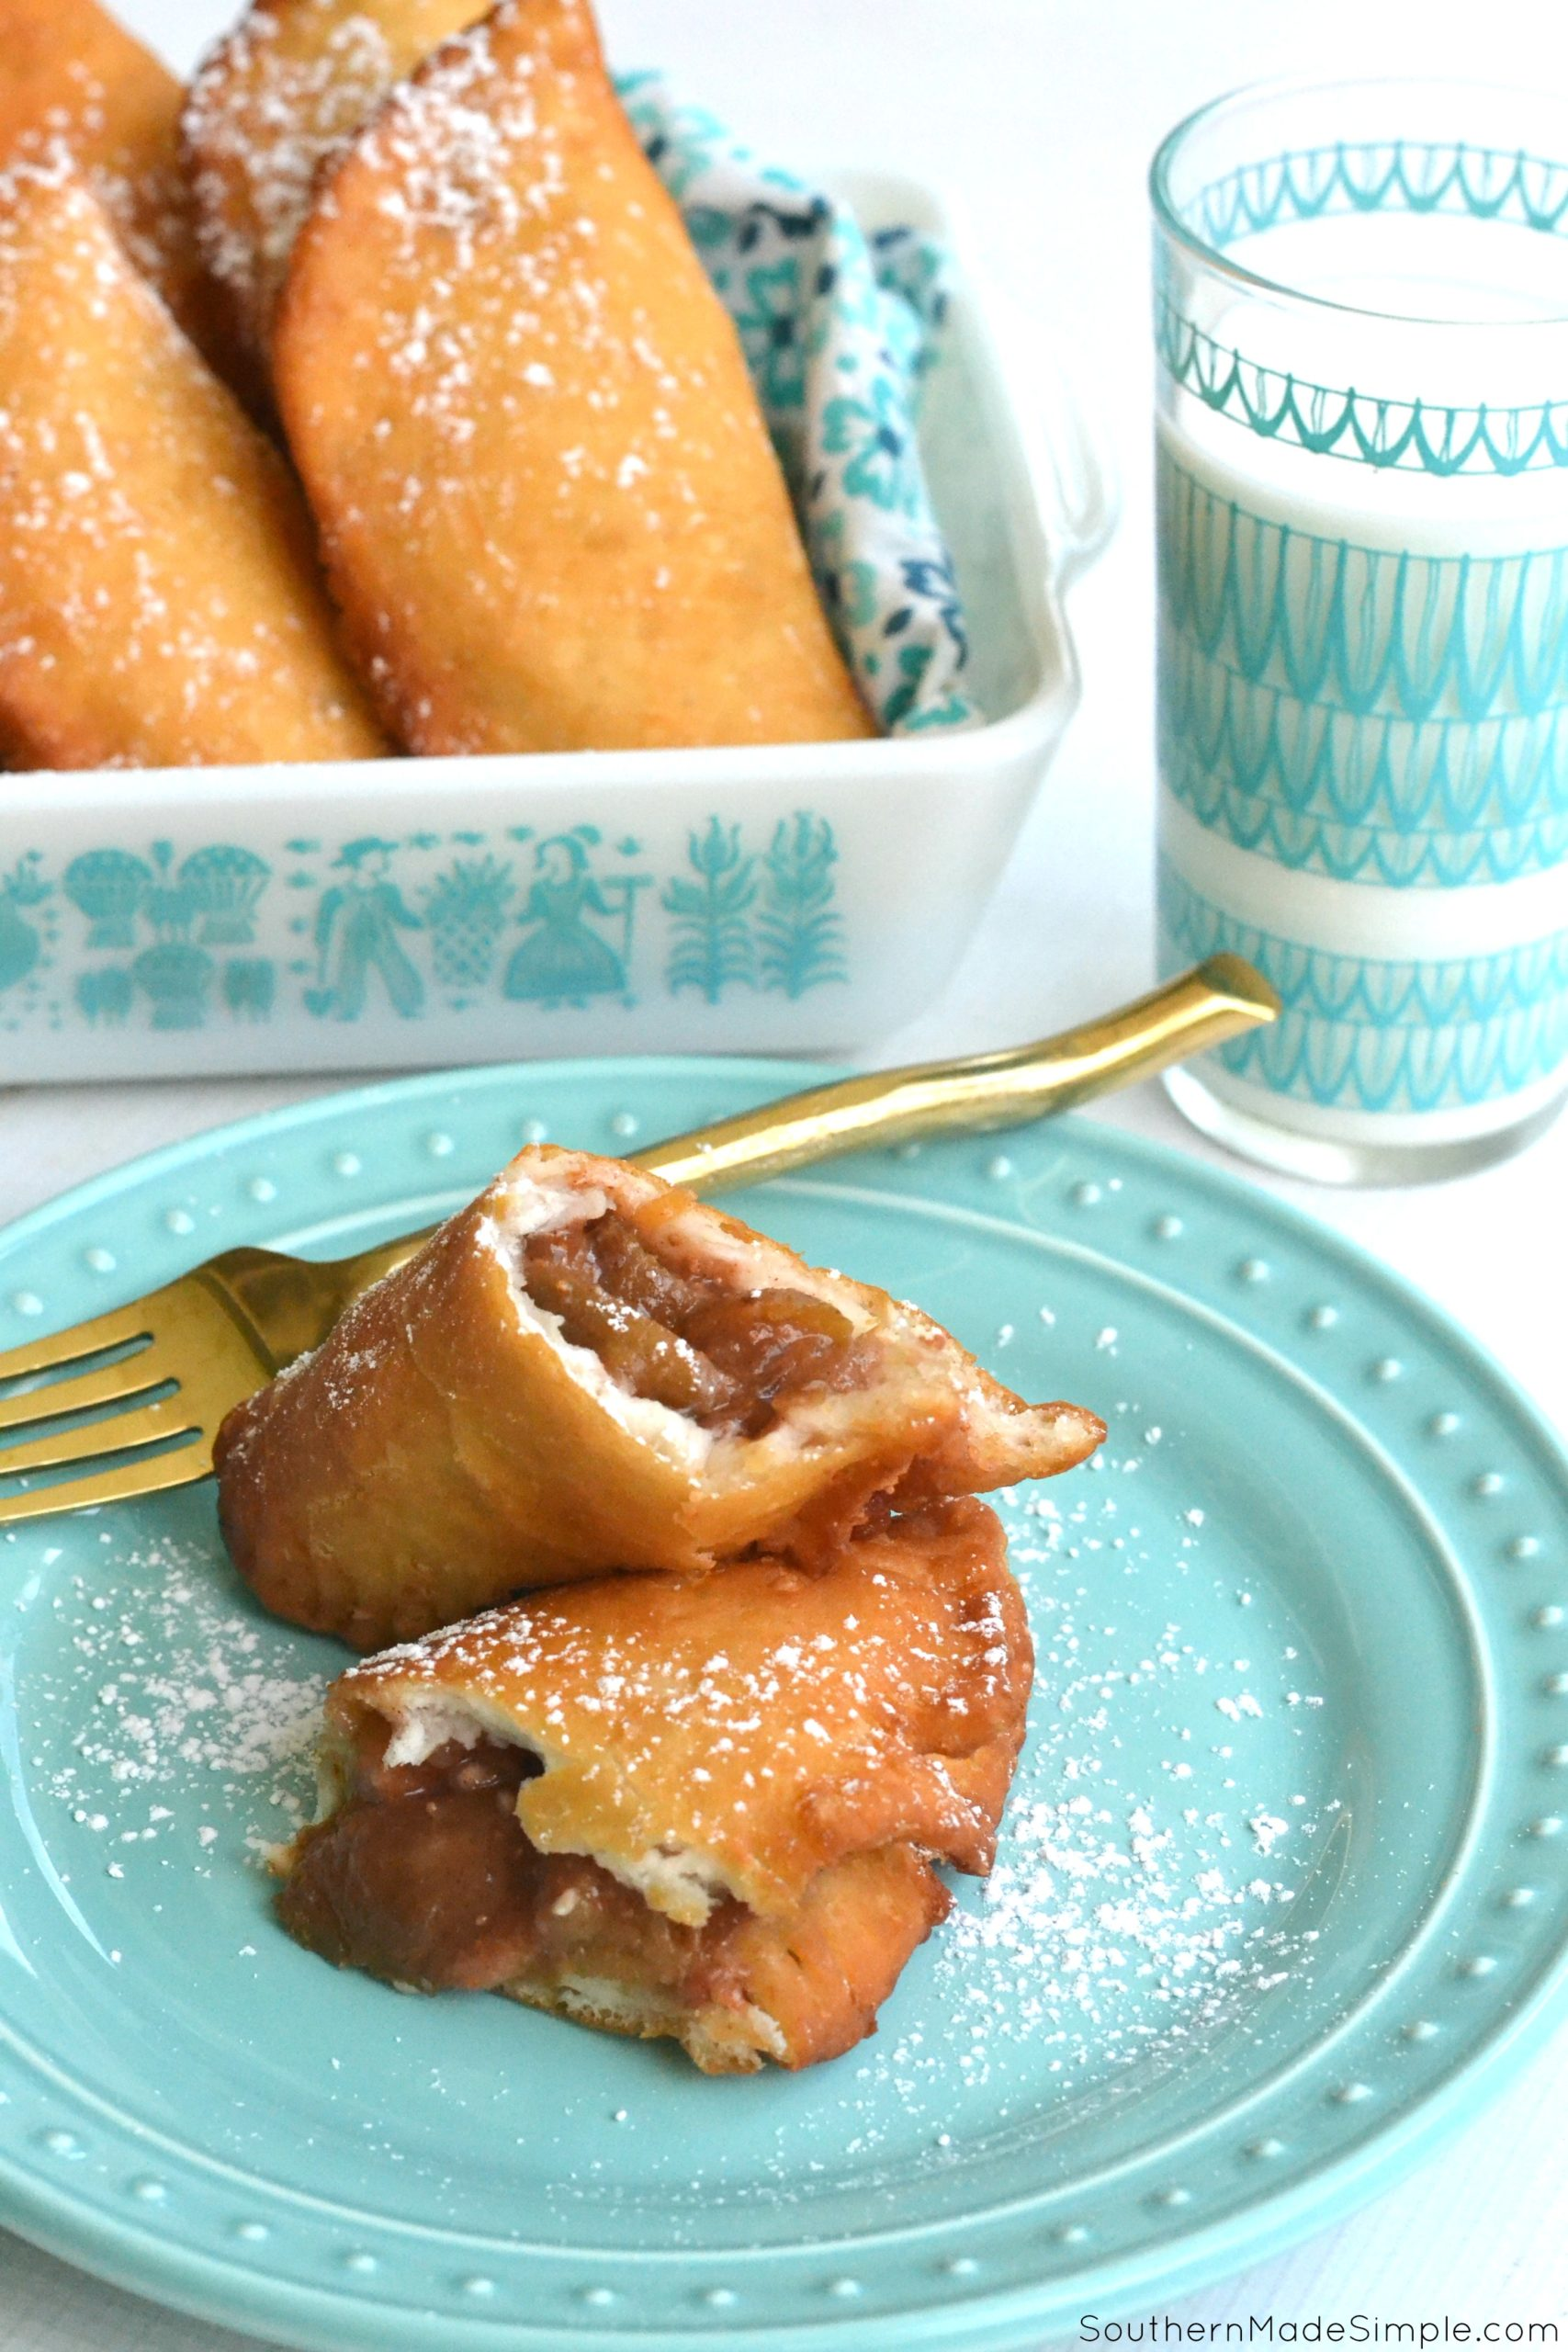 Southern Fried Fig Pies